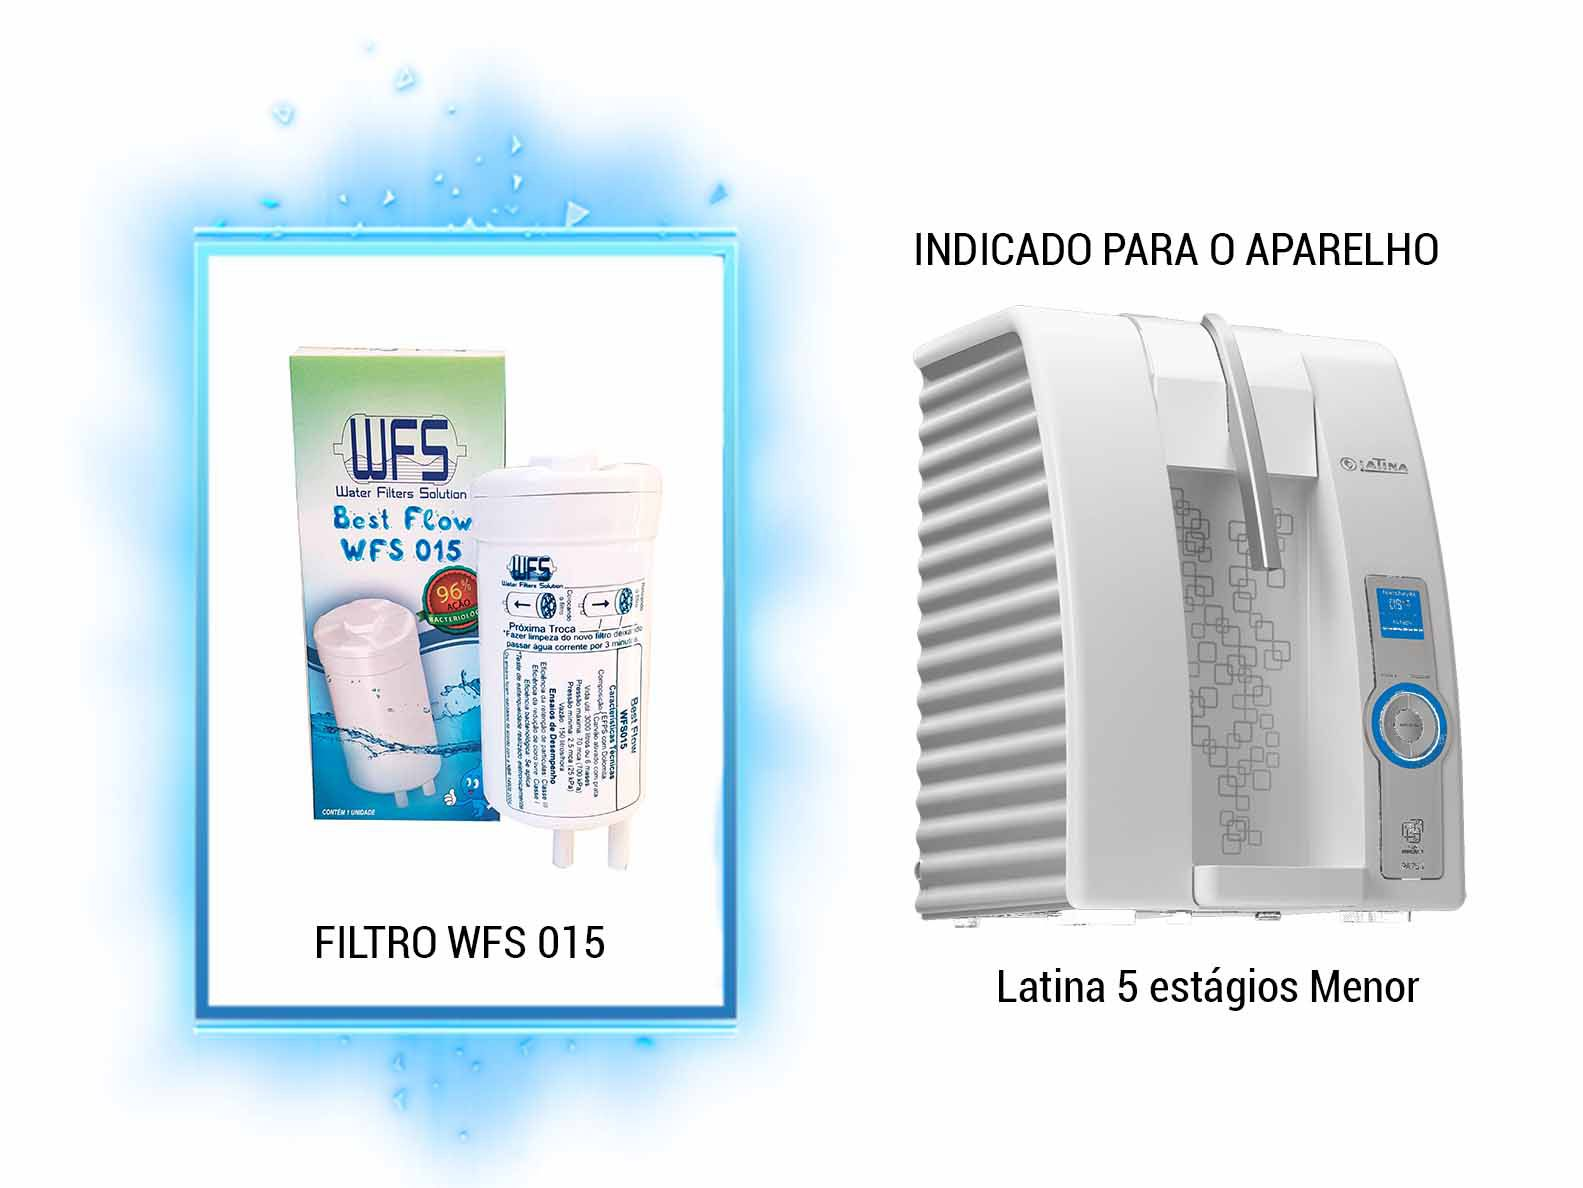 Refil Purificador Latina| Wfs 015 |Best Flow